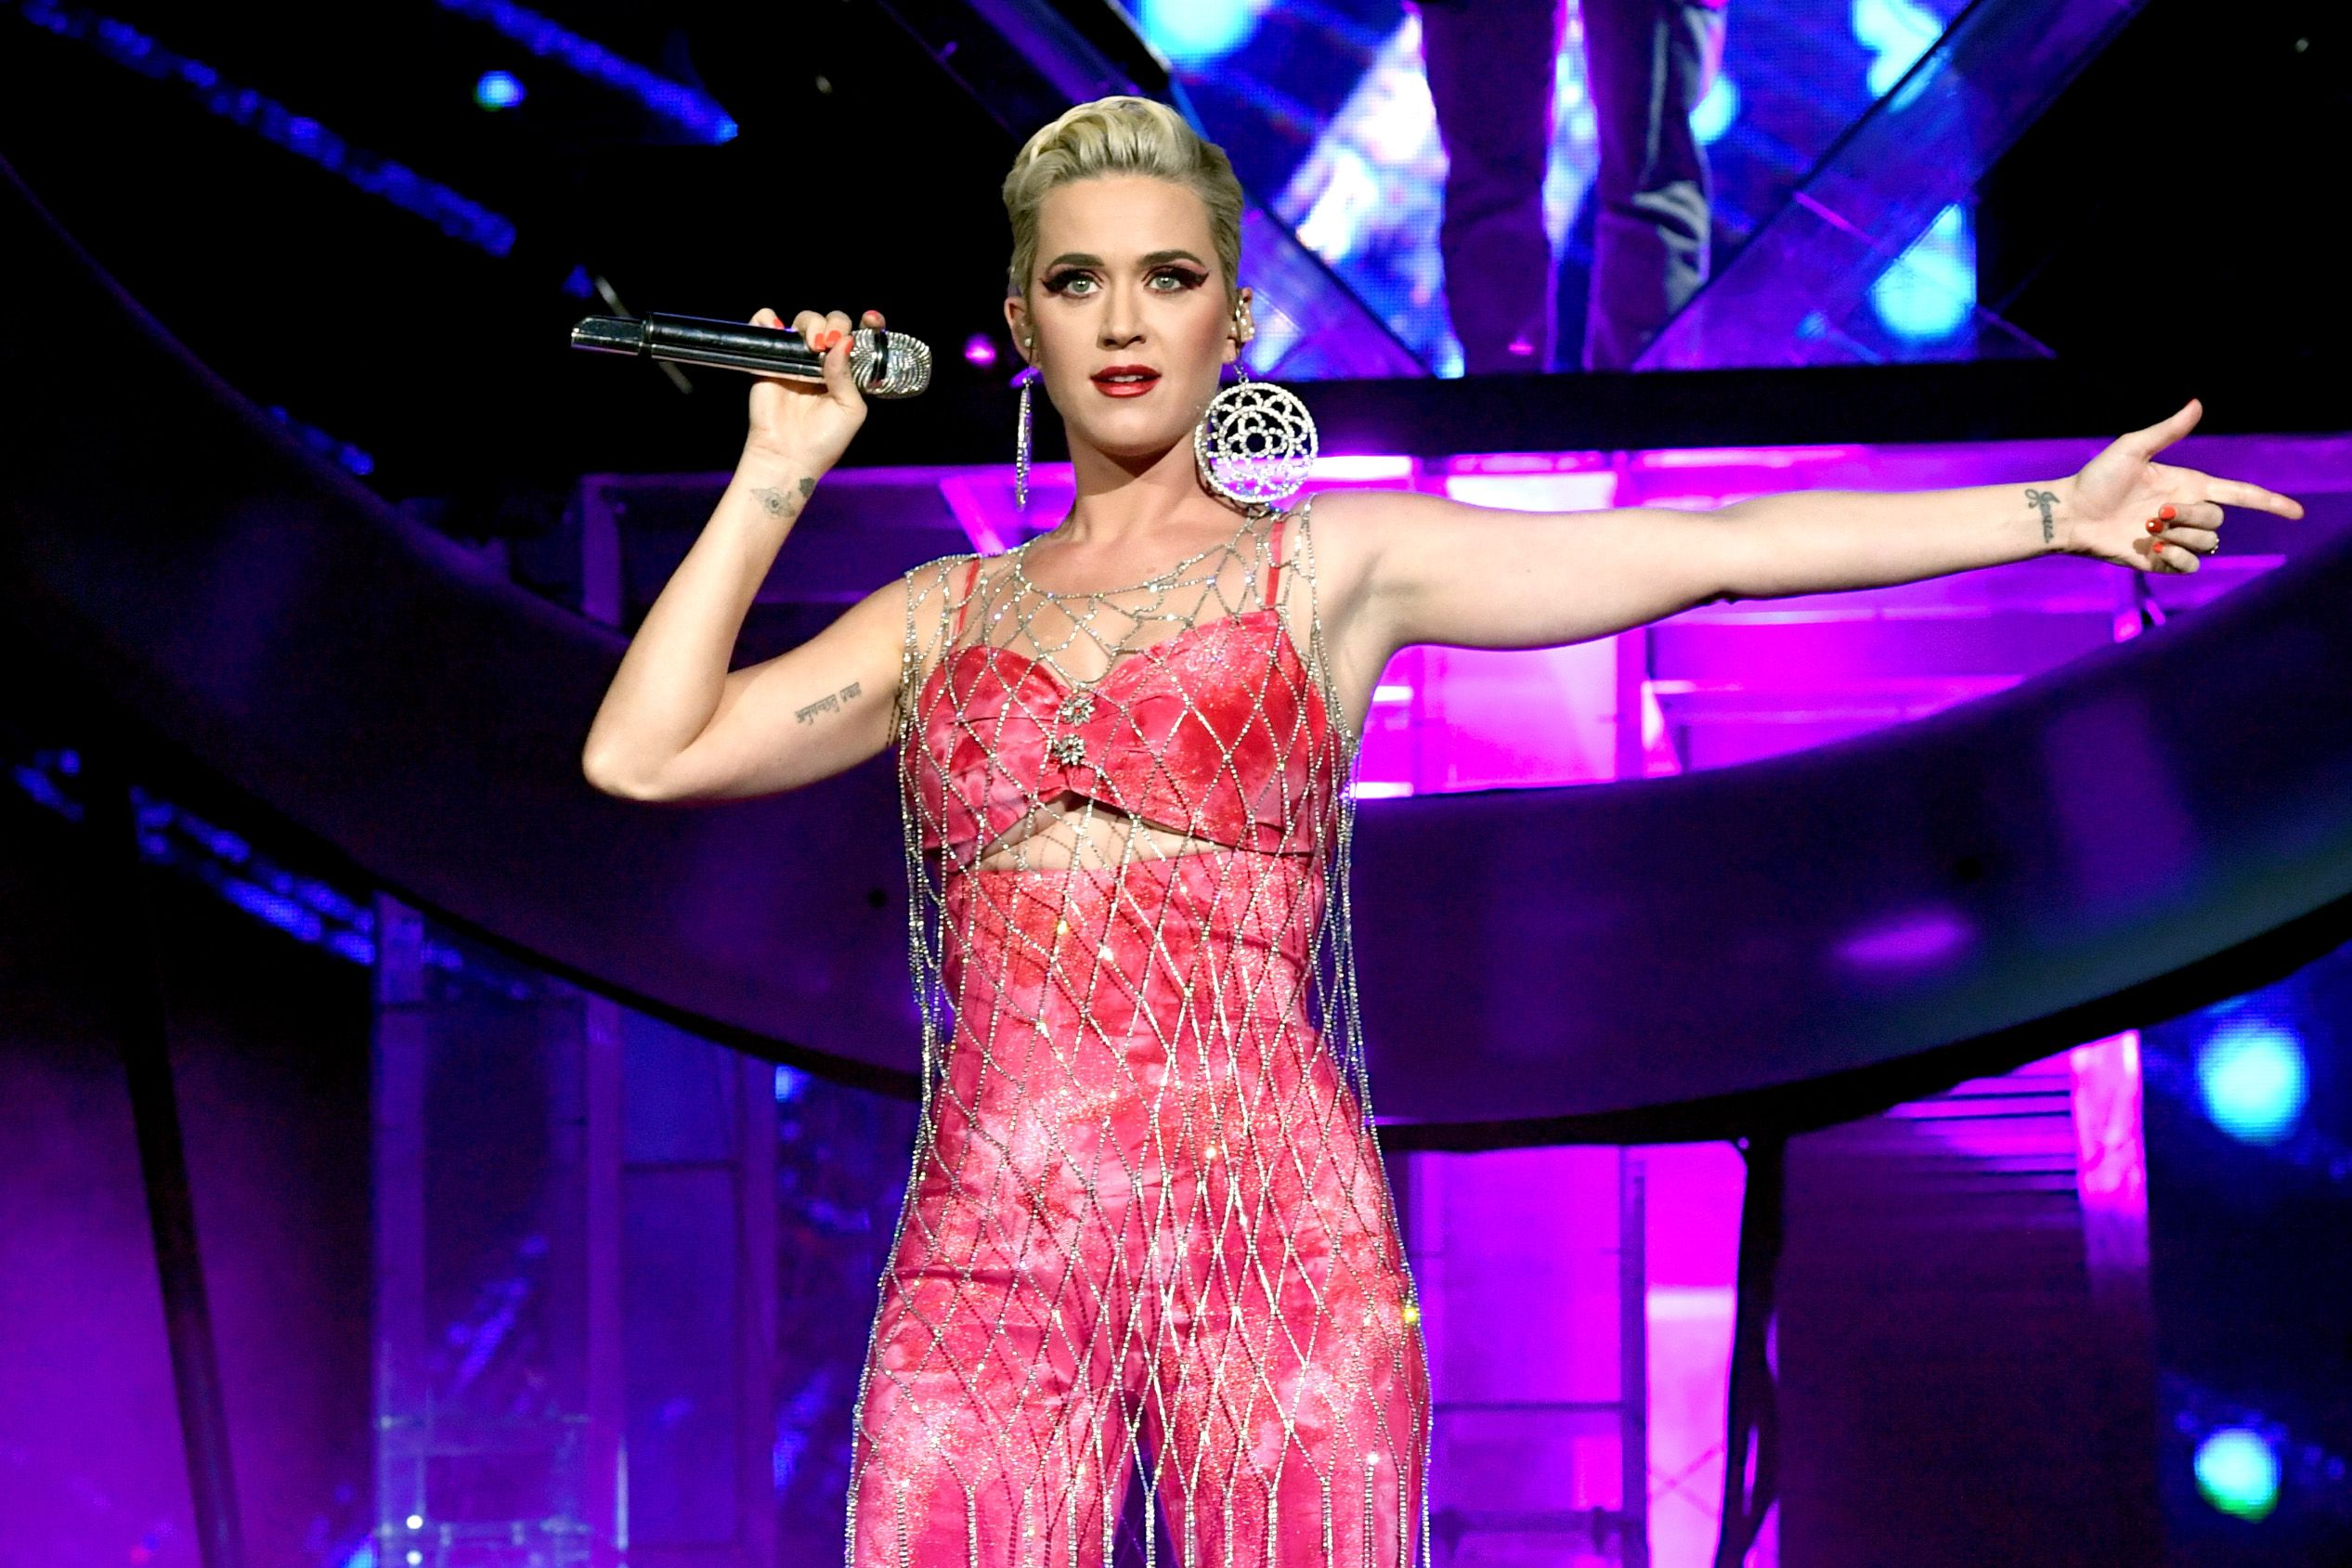 Katy Perry Performing on stage.